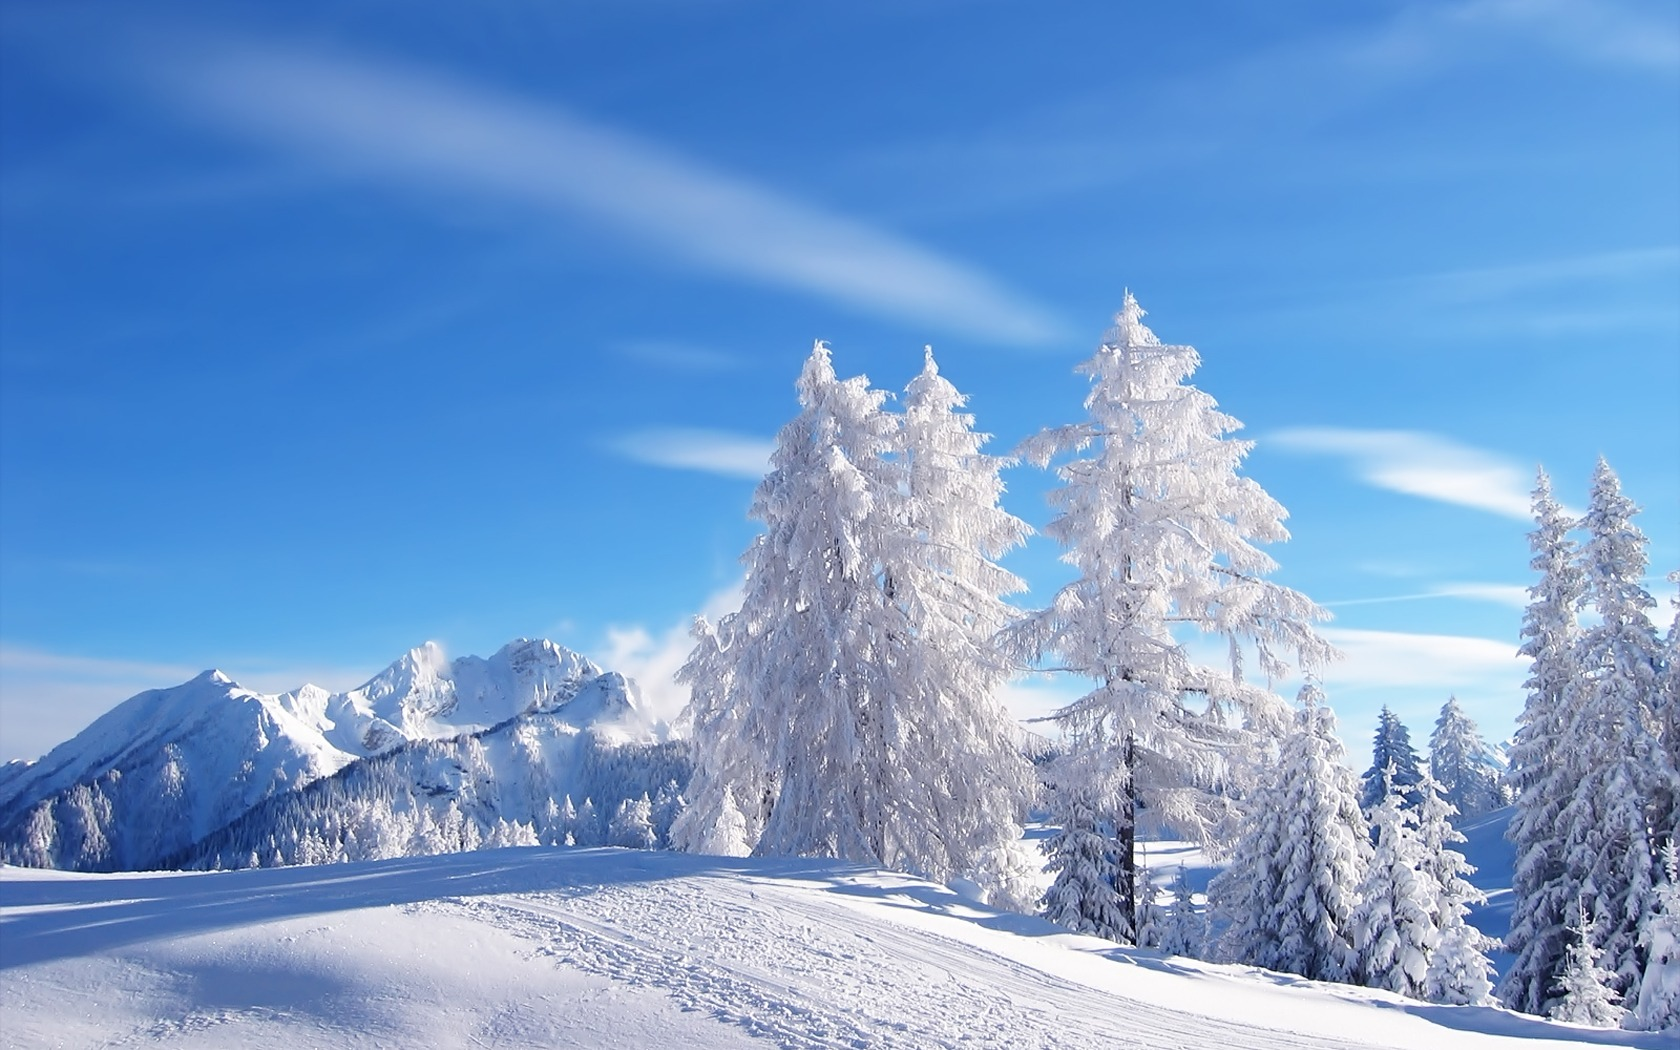 Snow Wallpaper Winter Nature Wallpapers in jpg format for free